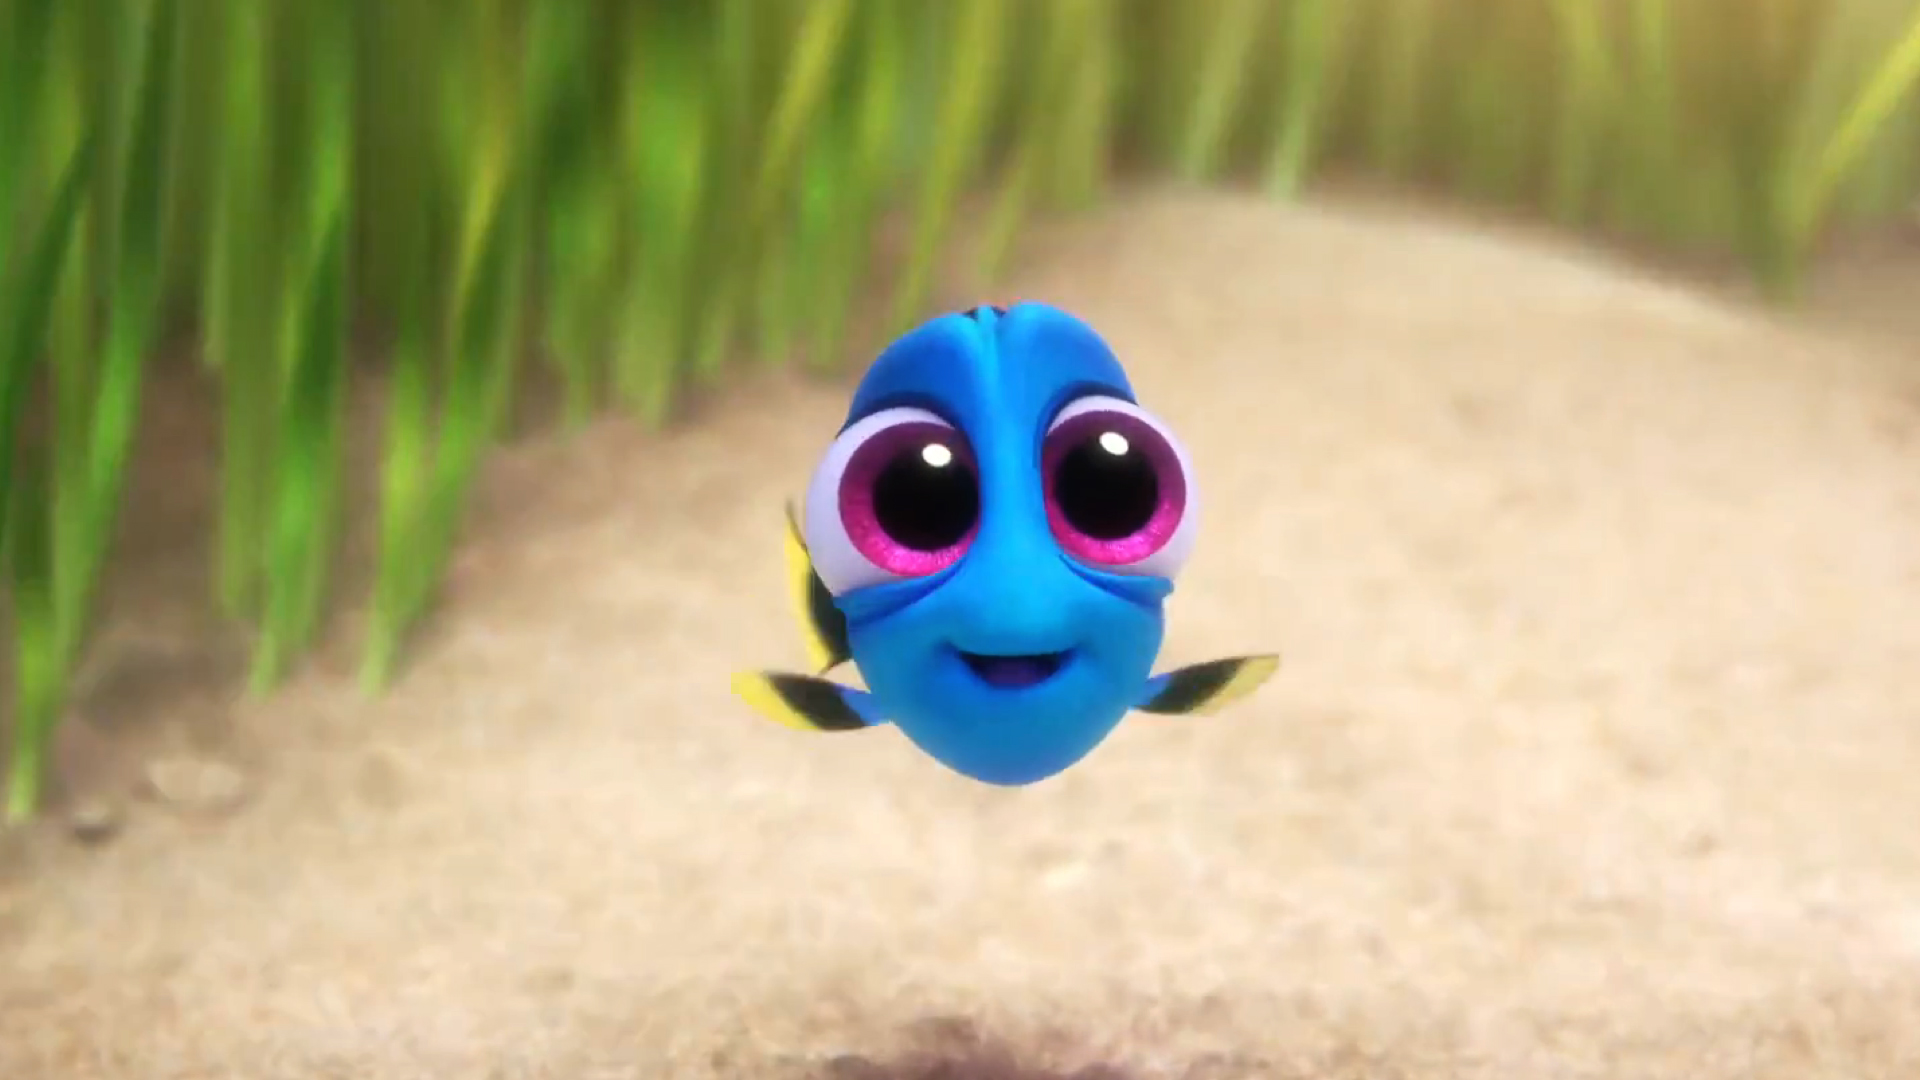 Finding Dory: Finding Dory Movie Clip - Baby Dory - Fandango